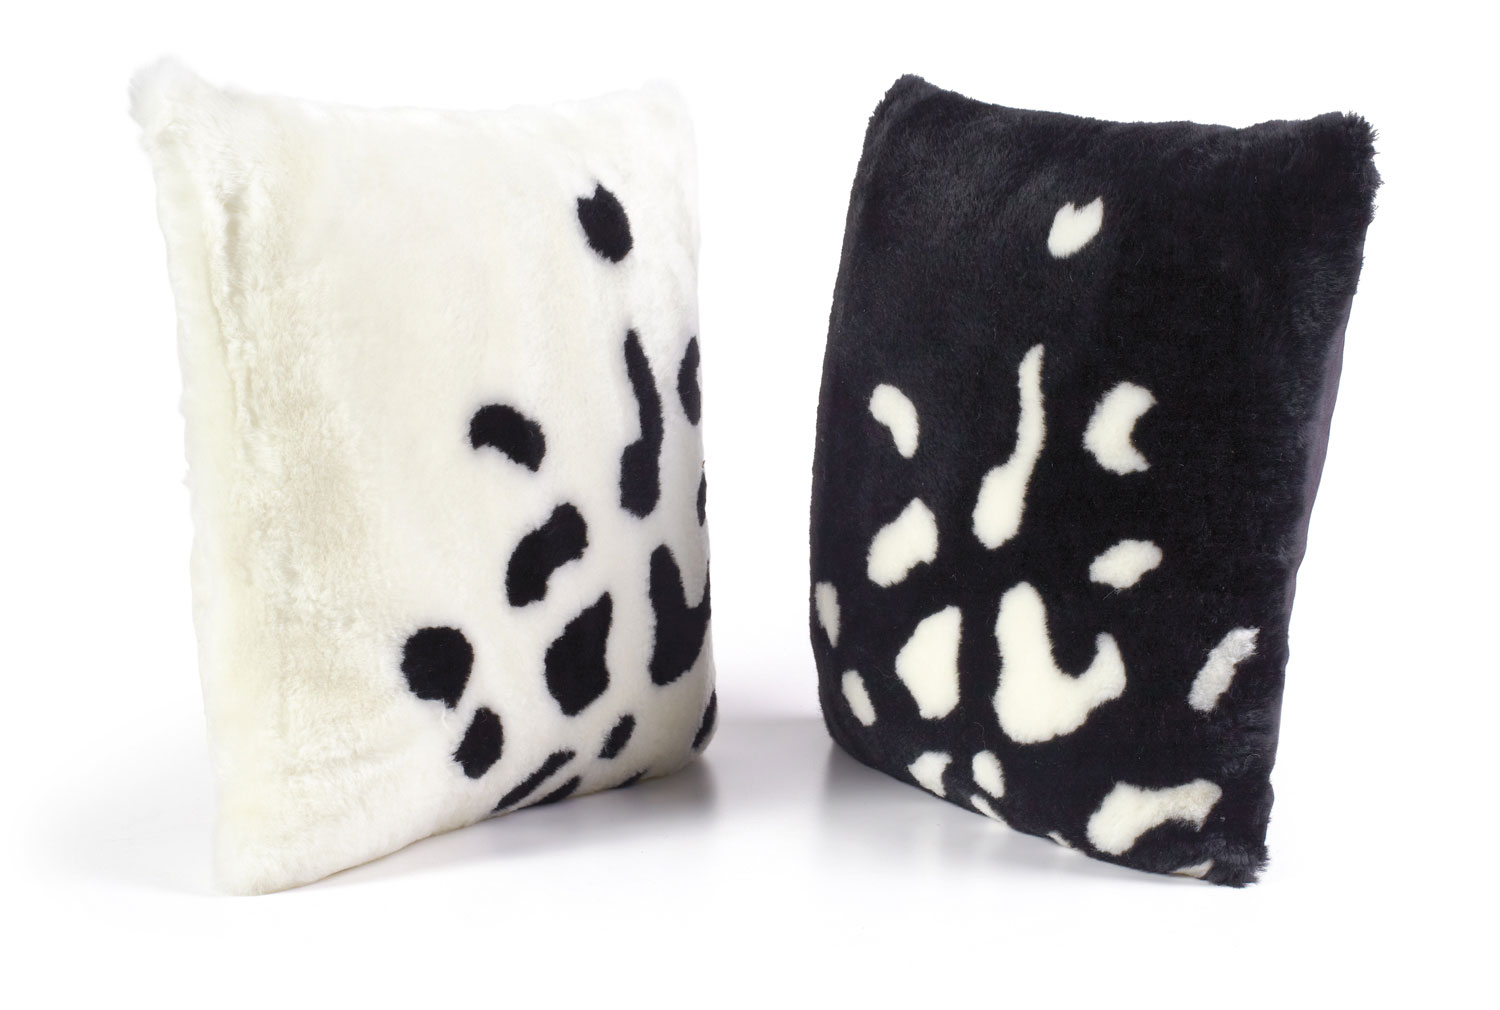 Dalmation pillows